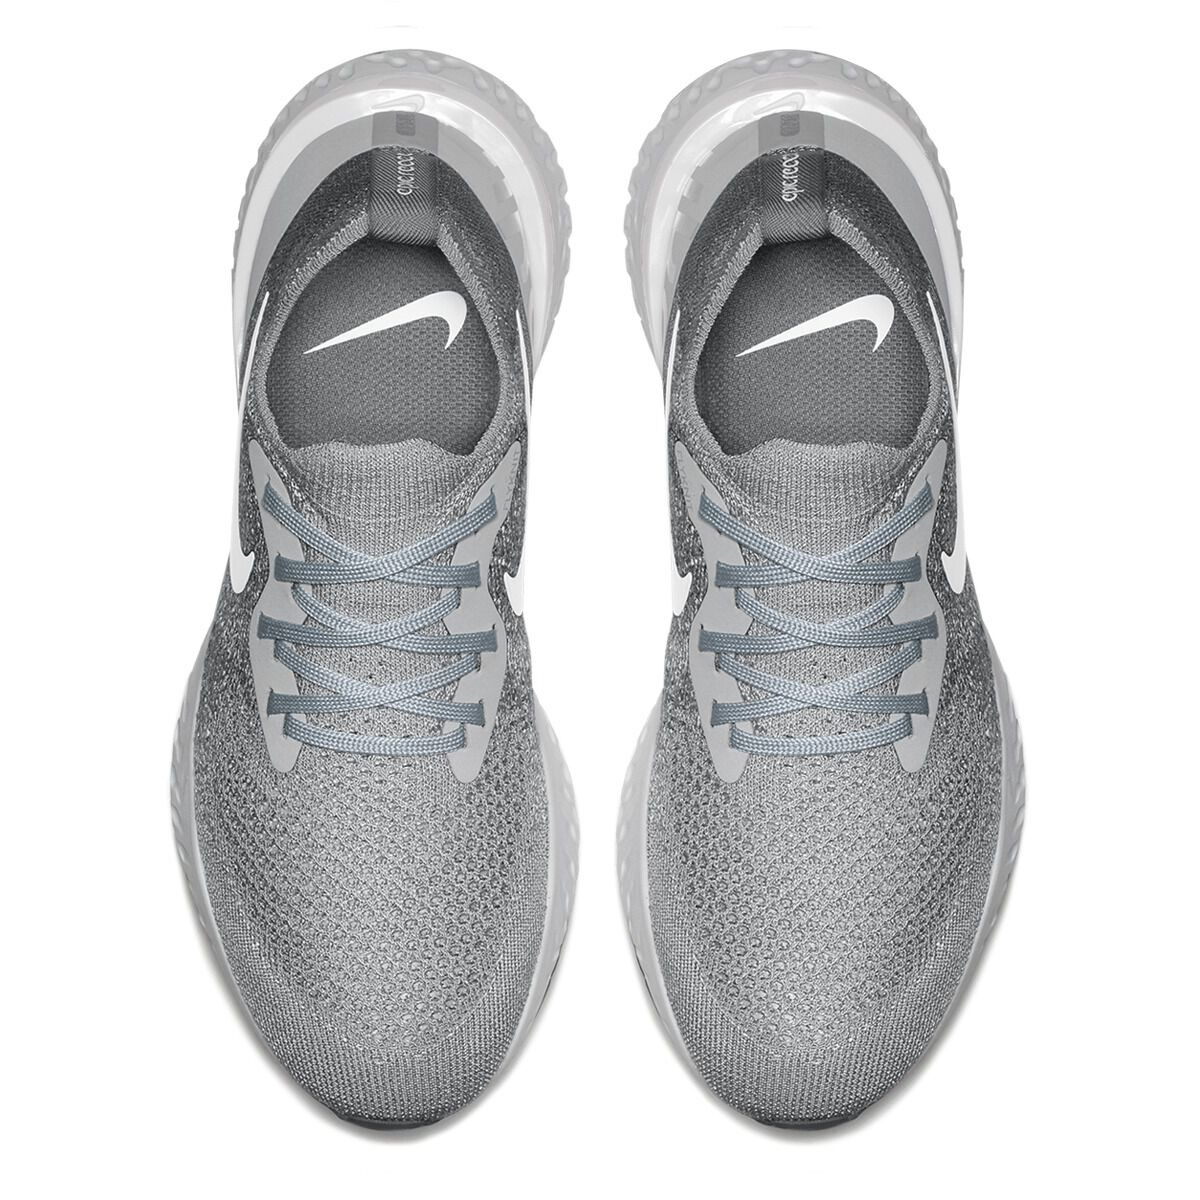 a20a65bc9d51a italy nike epic react flyknit womens running shoes grey white us 7 grey  white 5767d 23ca8